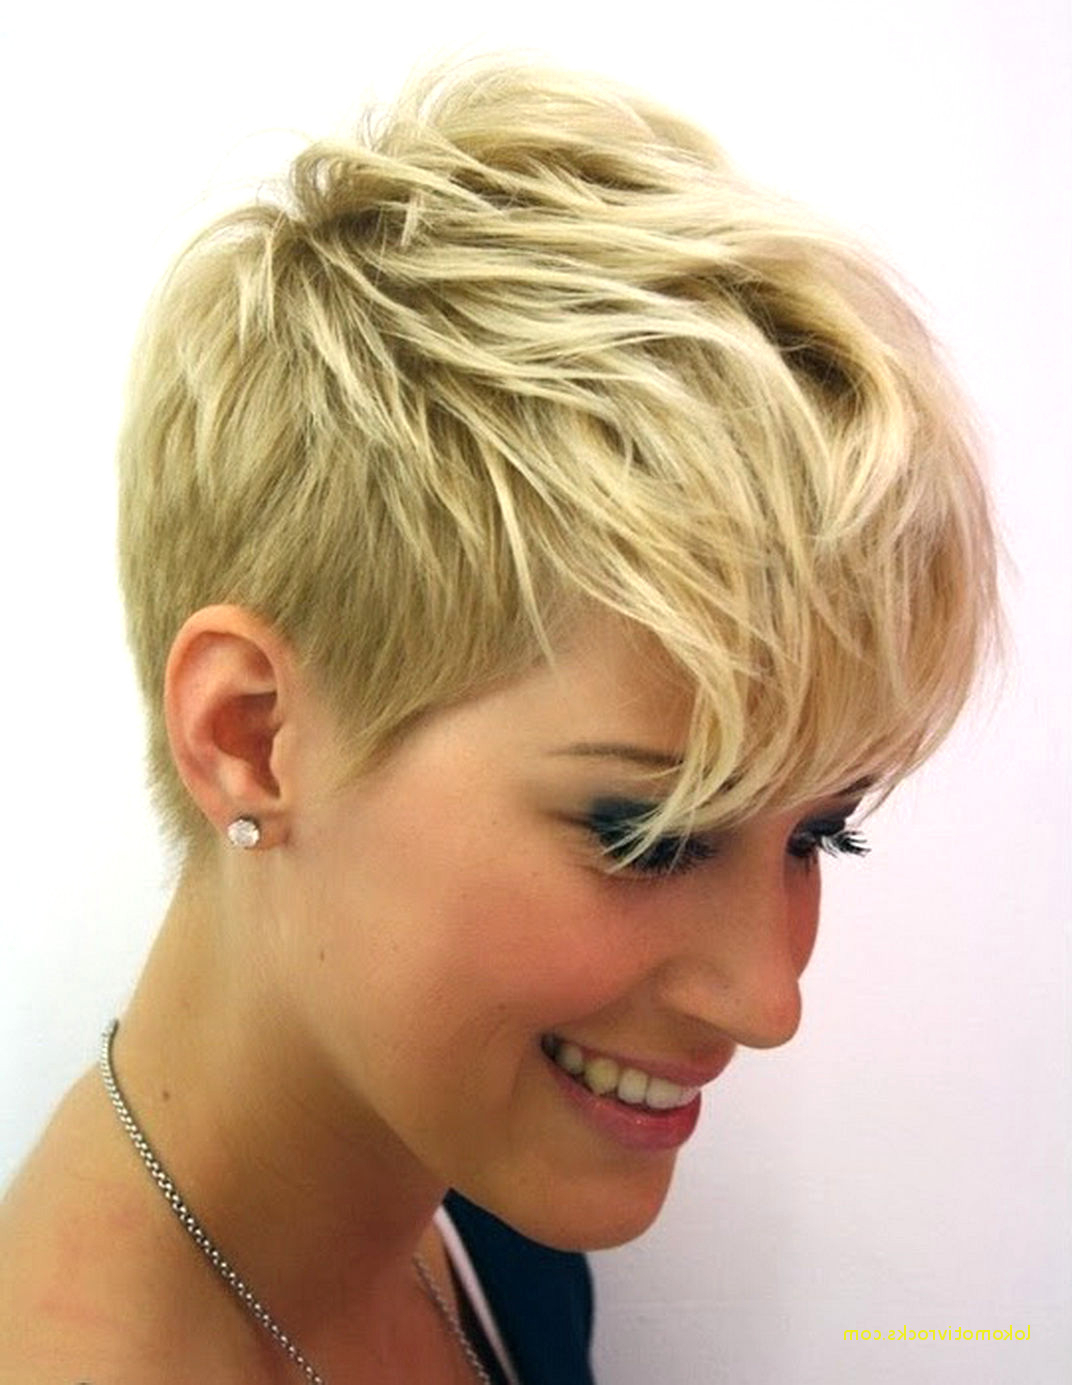 Top Result 50 Unique Easy Hairstyles For Heart Shaped Faces Pic 2018 Inside Cute Short Haircuts For Heart Shaped Faces (View 25 of 25)